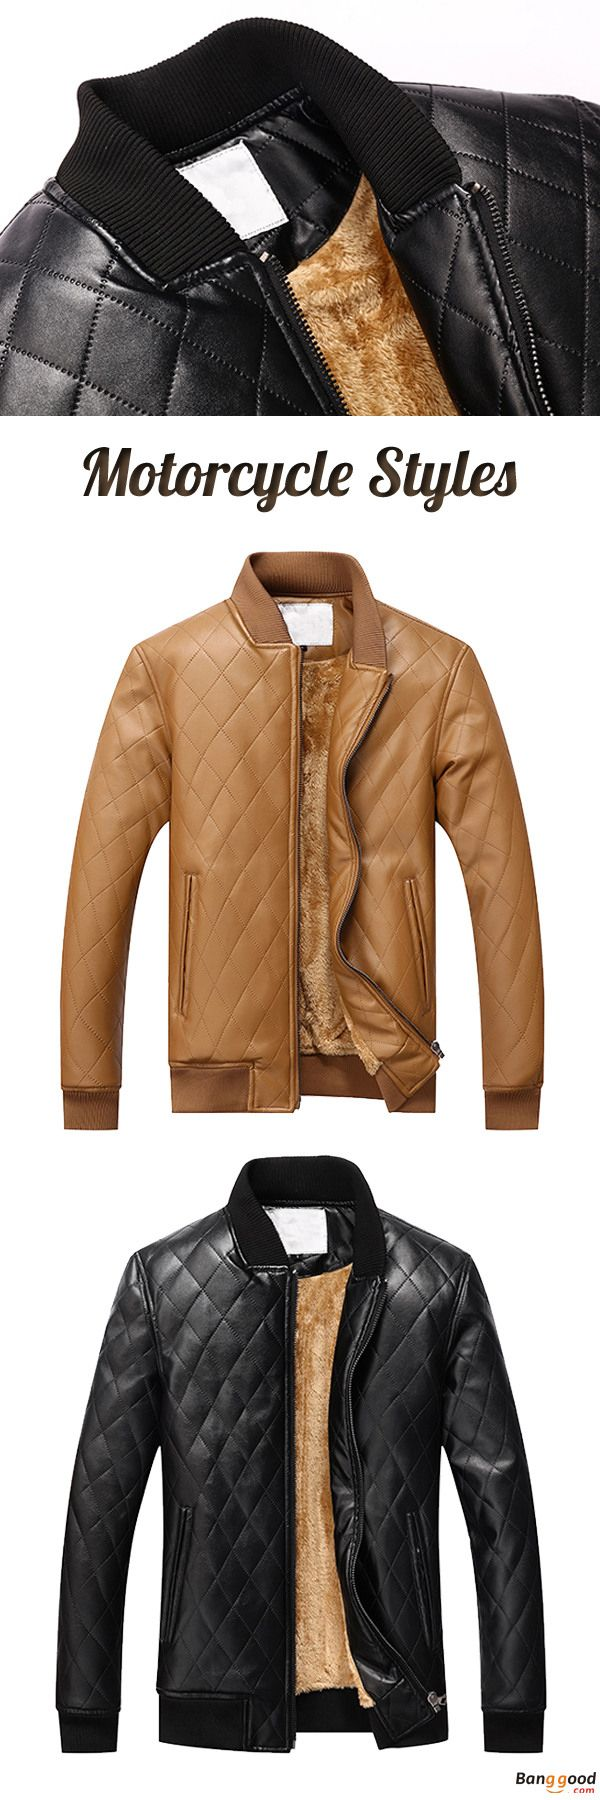 US$68.15 + Free Shipping. Mens PU Leather Motorcycle Thick Fleece Winter Jacket Casual Solid Color Baseball Collar Coat. Adventure Awaits Around Every Bend, Tackle Your Next Exploit In These Jackets.